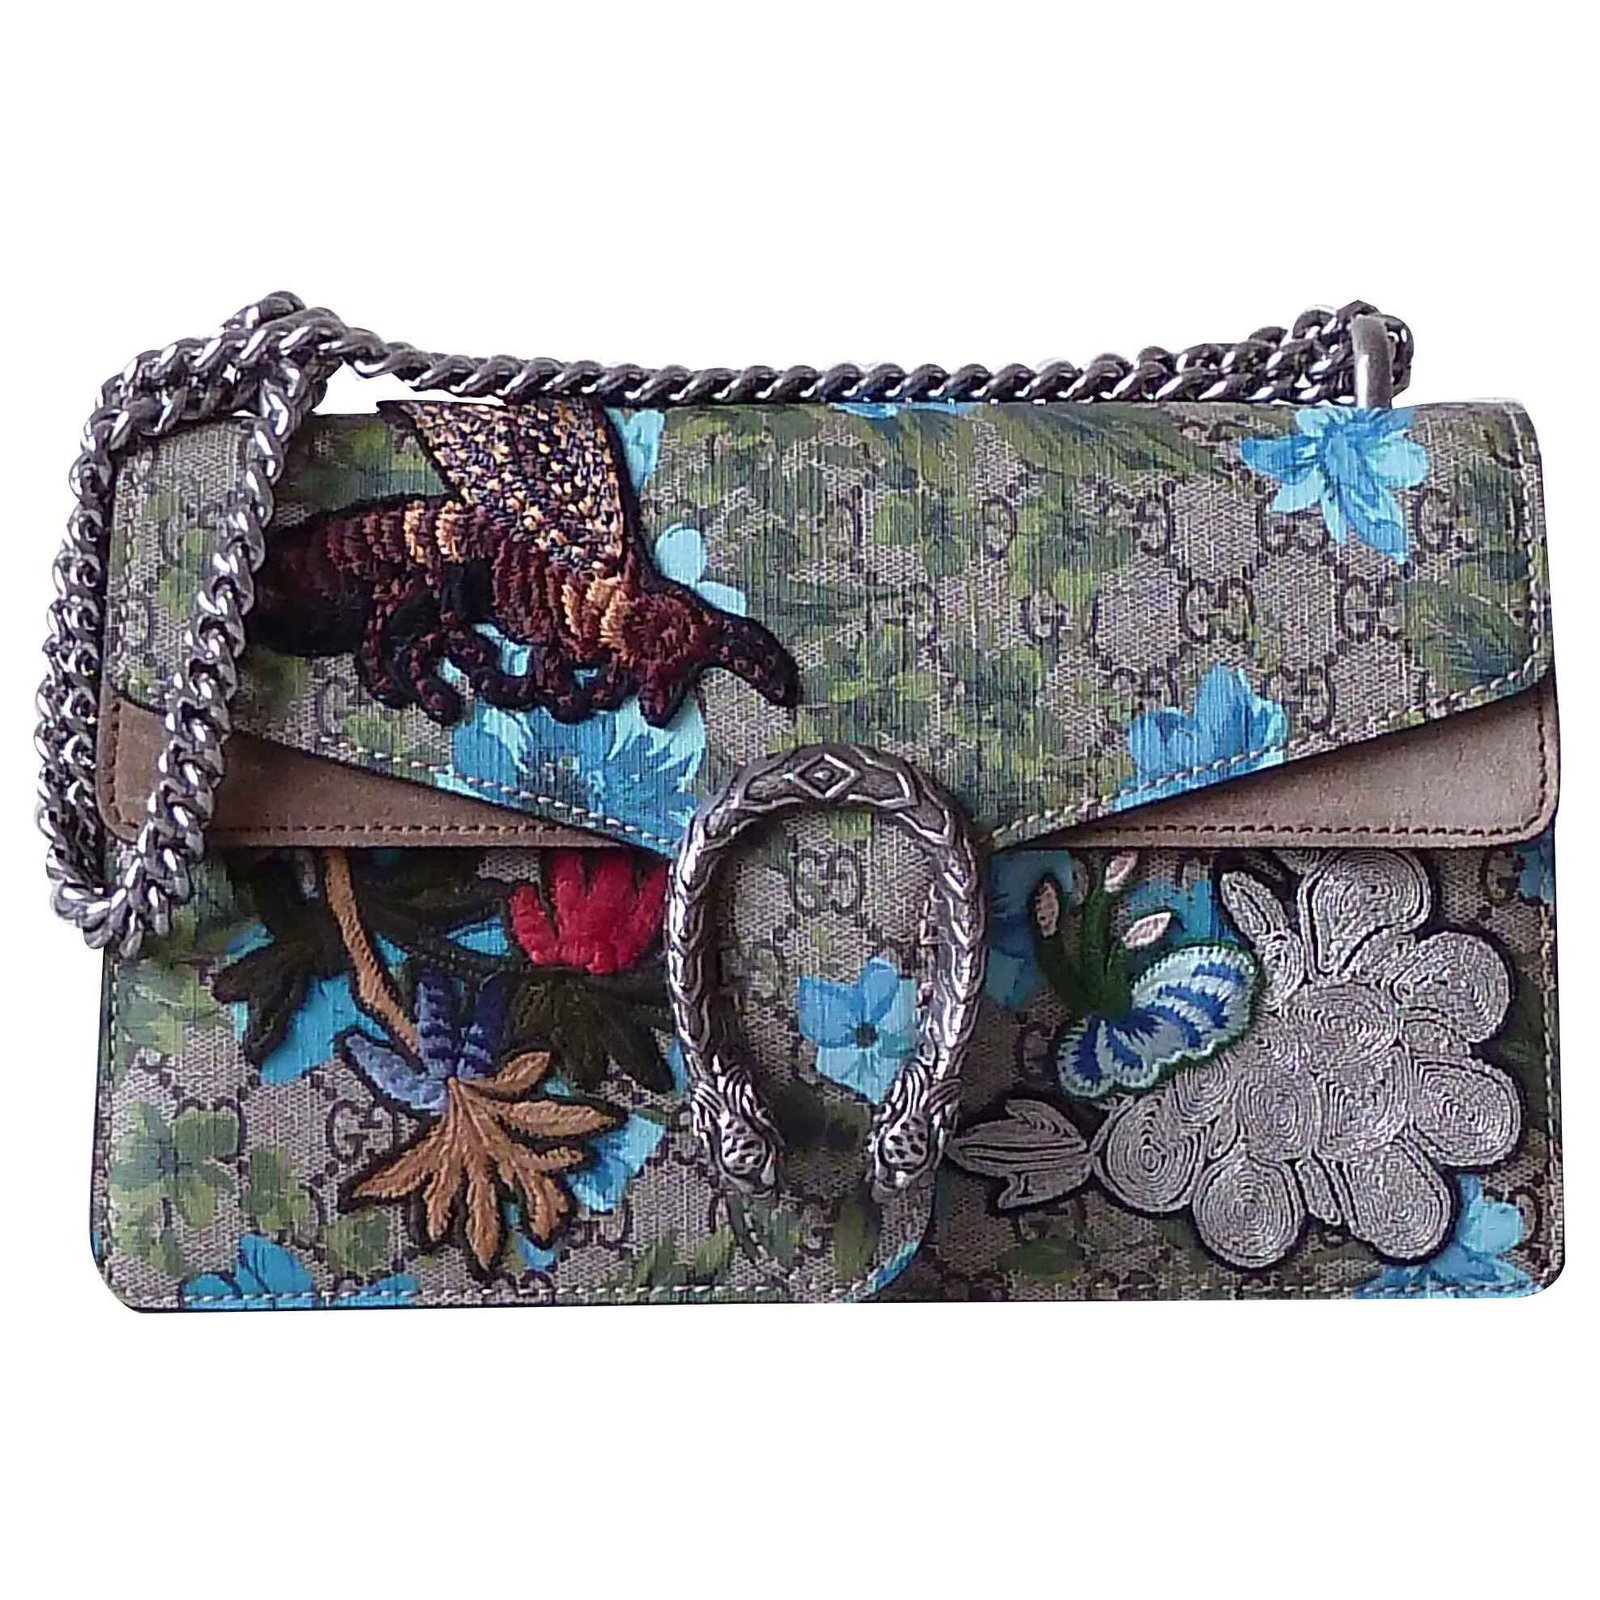 Gucci Dionysus Limited Edition Embroidery